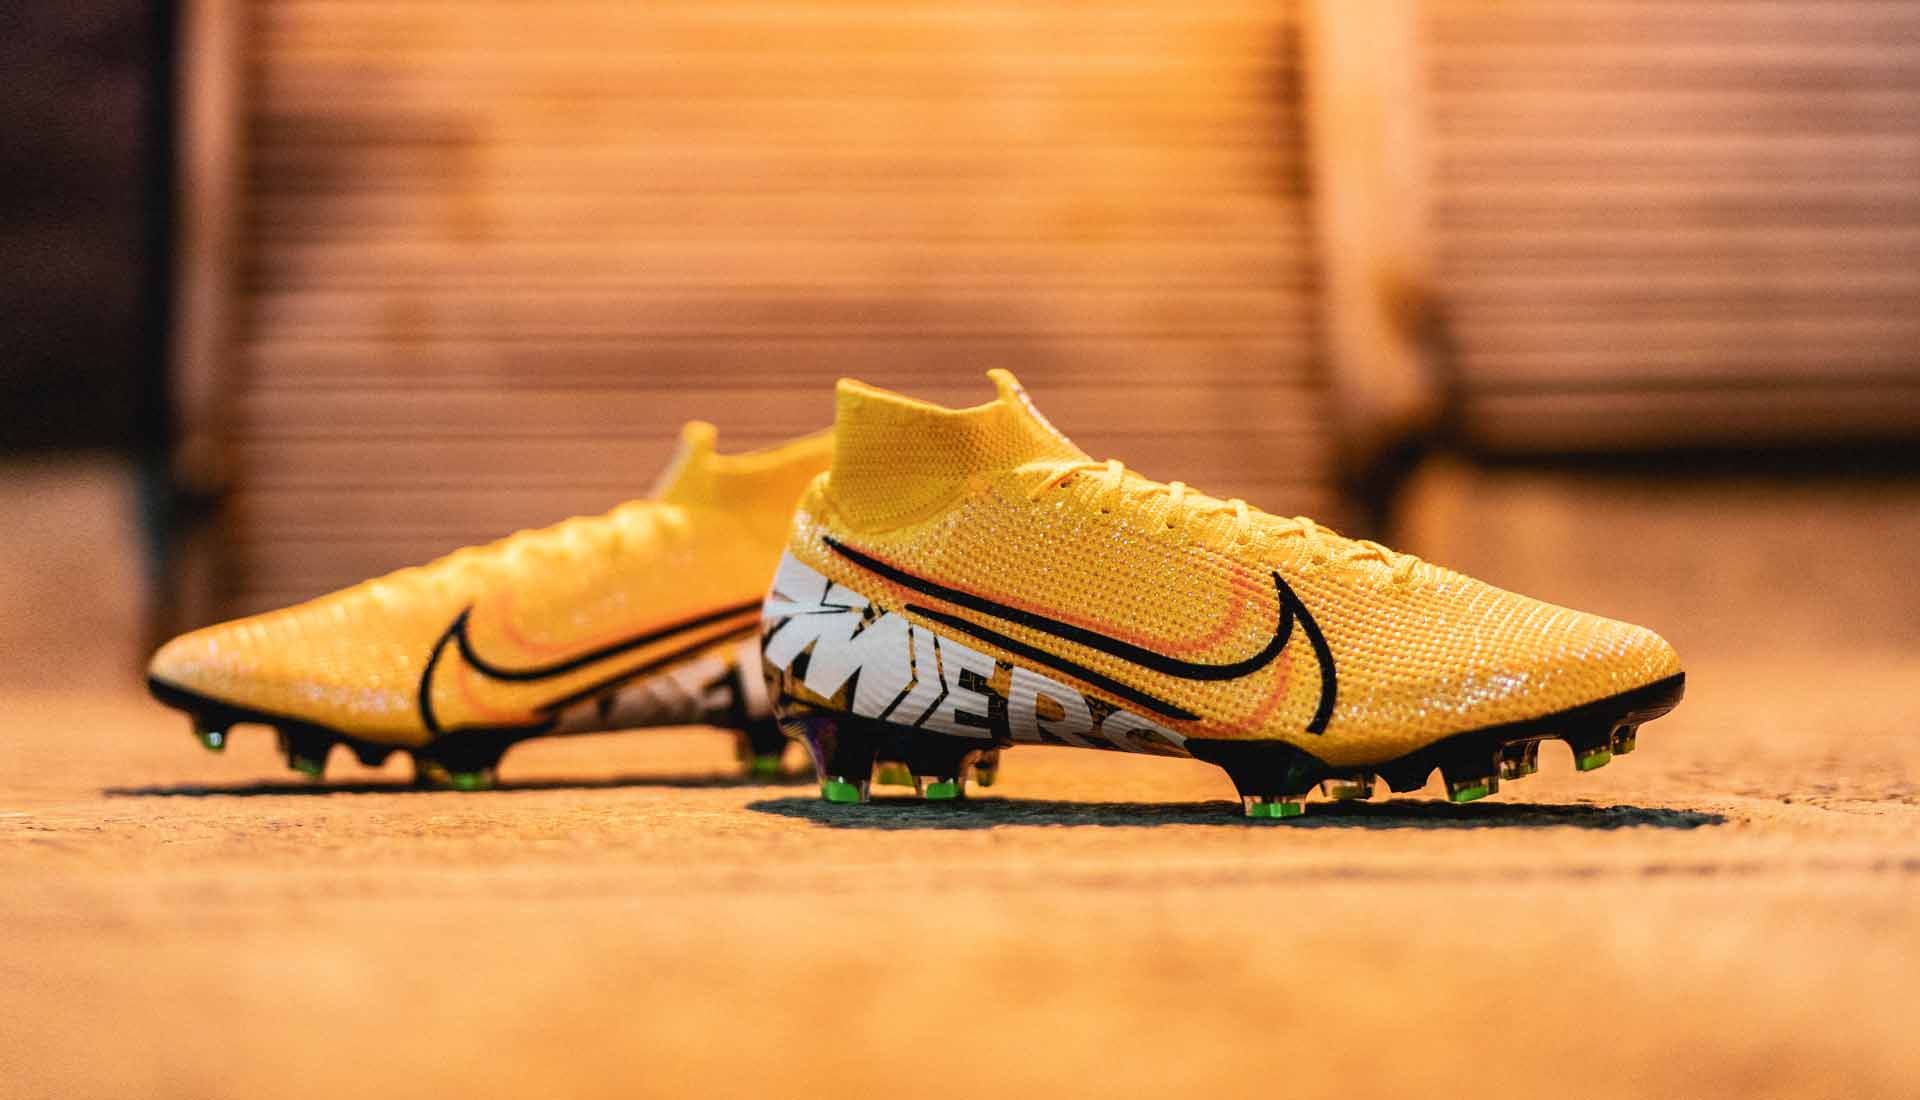 Nike Launch Limited Edition Mercurial